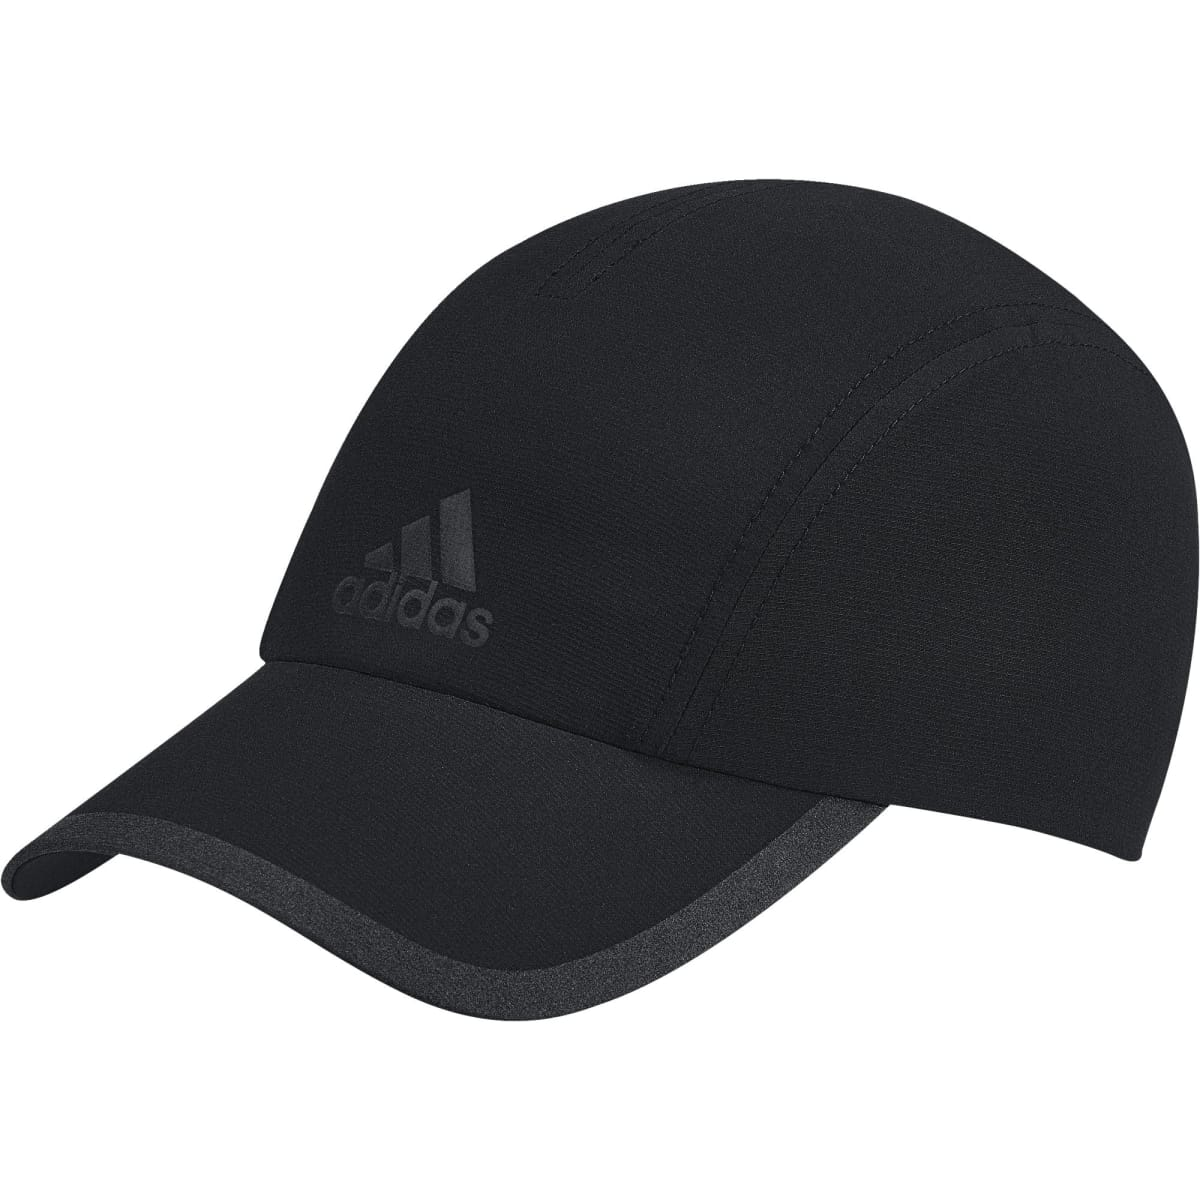 1dd4a740140 Product Image. Adidas Reflective Run Cap